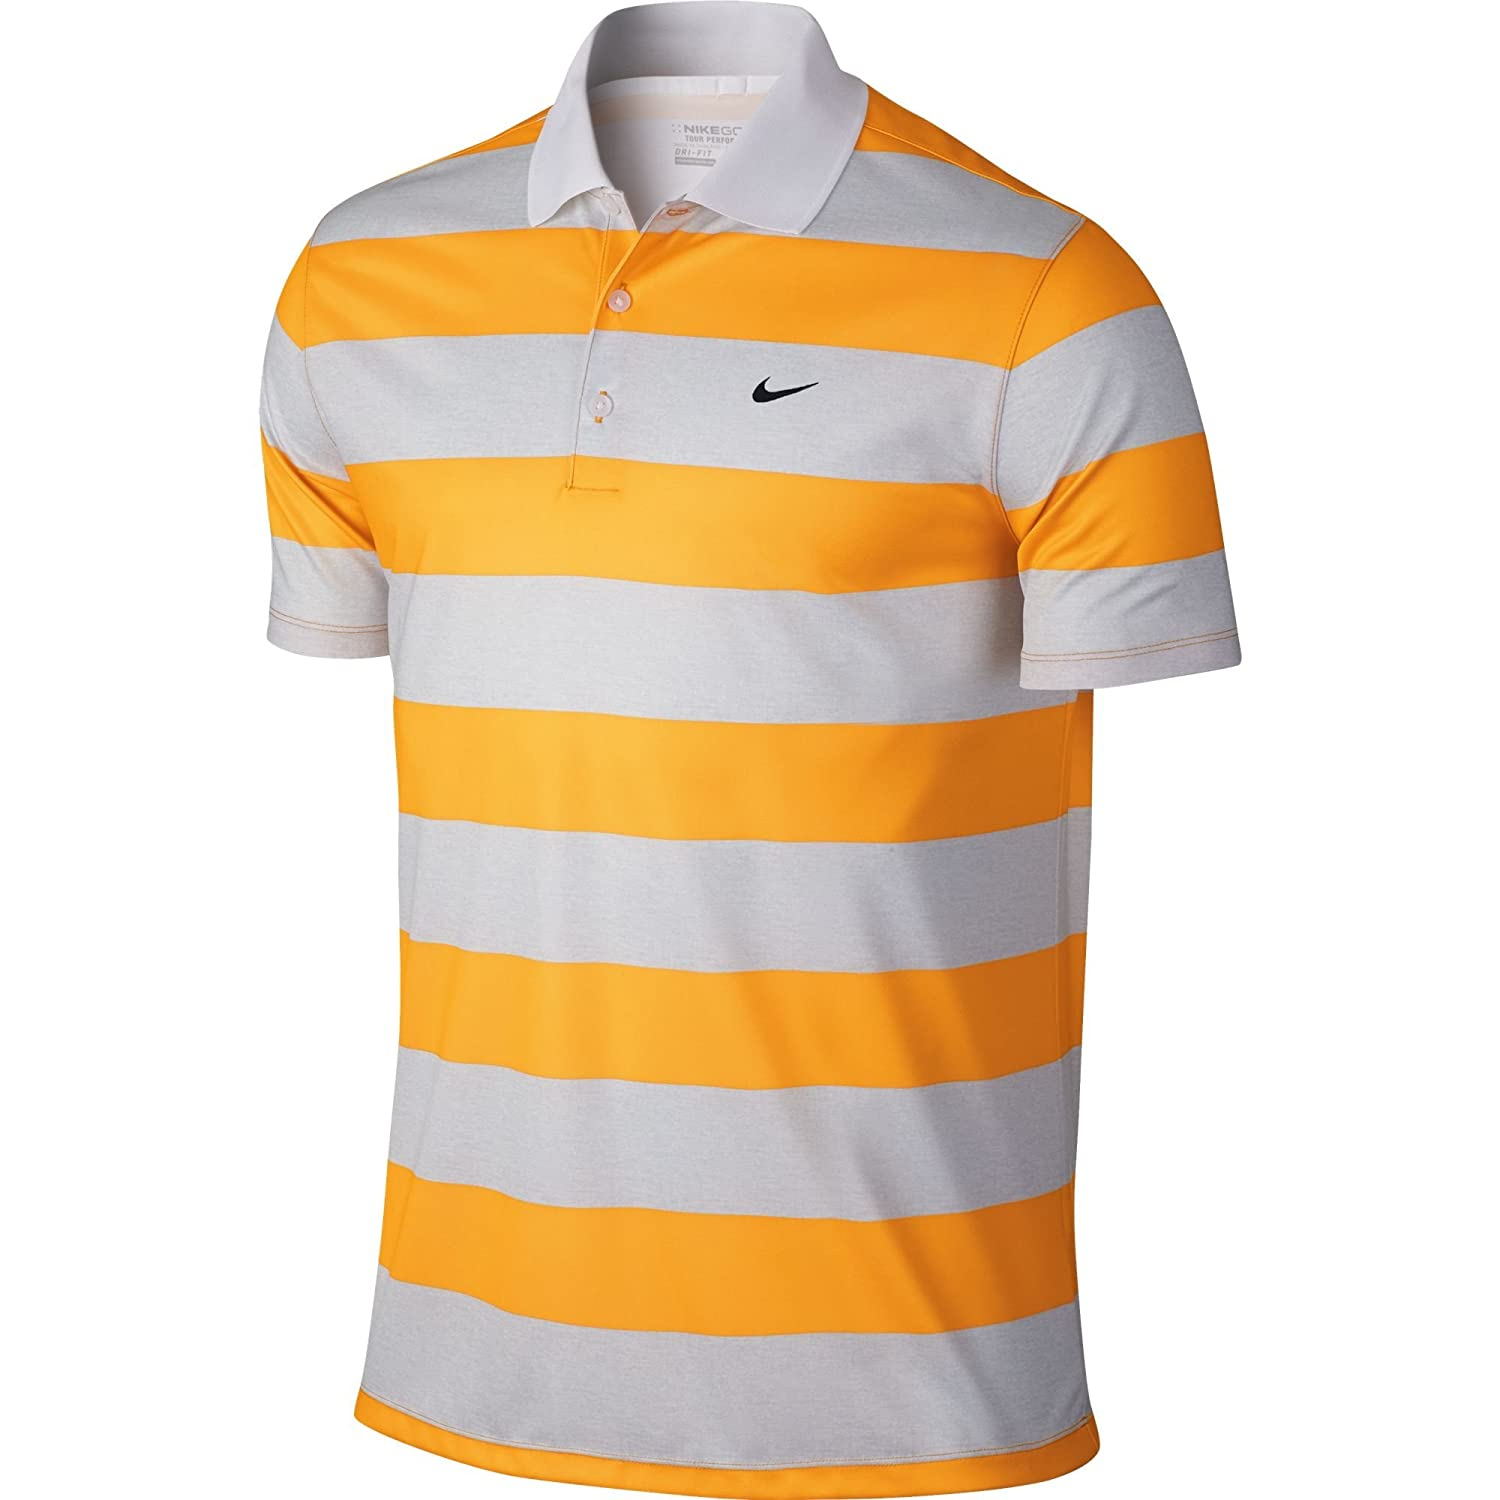 Nike Men's Victory Bold Stripe Polo Shirt: Amazon.co.uk: Sports & Outdoors